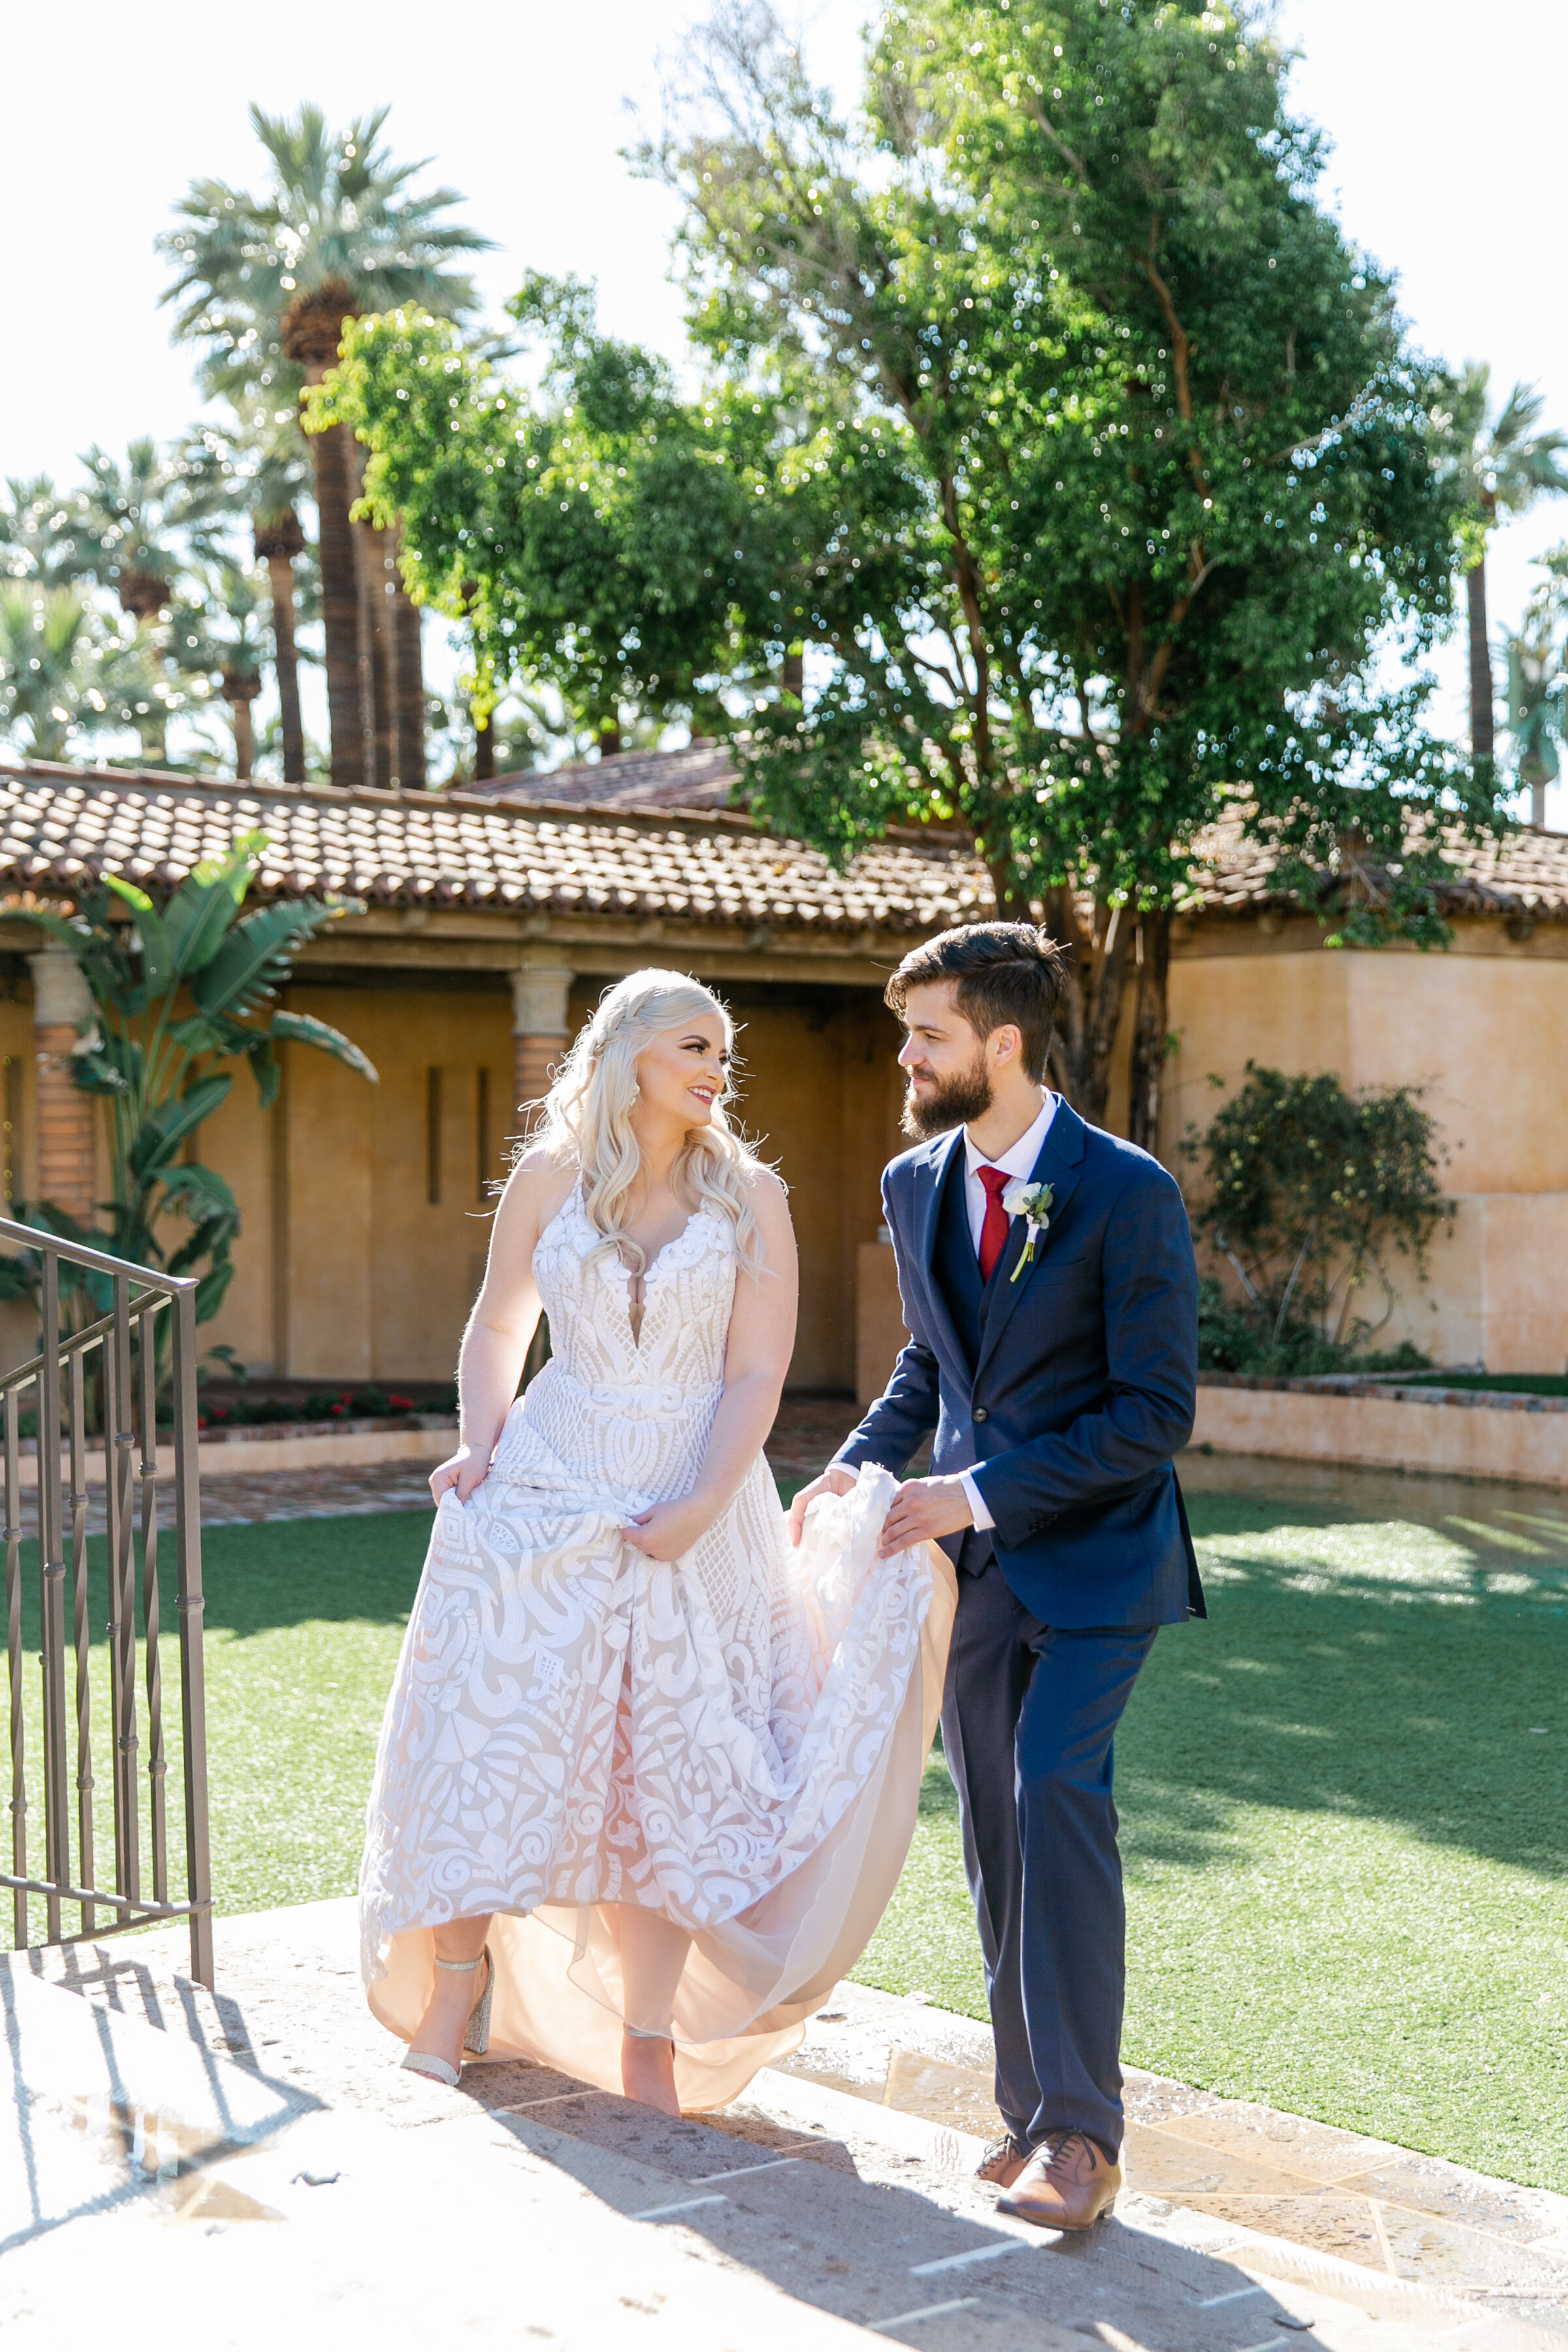 Karlie Colleen Photography - The Royal Palms Wedding - Some Like It Classic - Alex & Sam-174